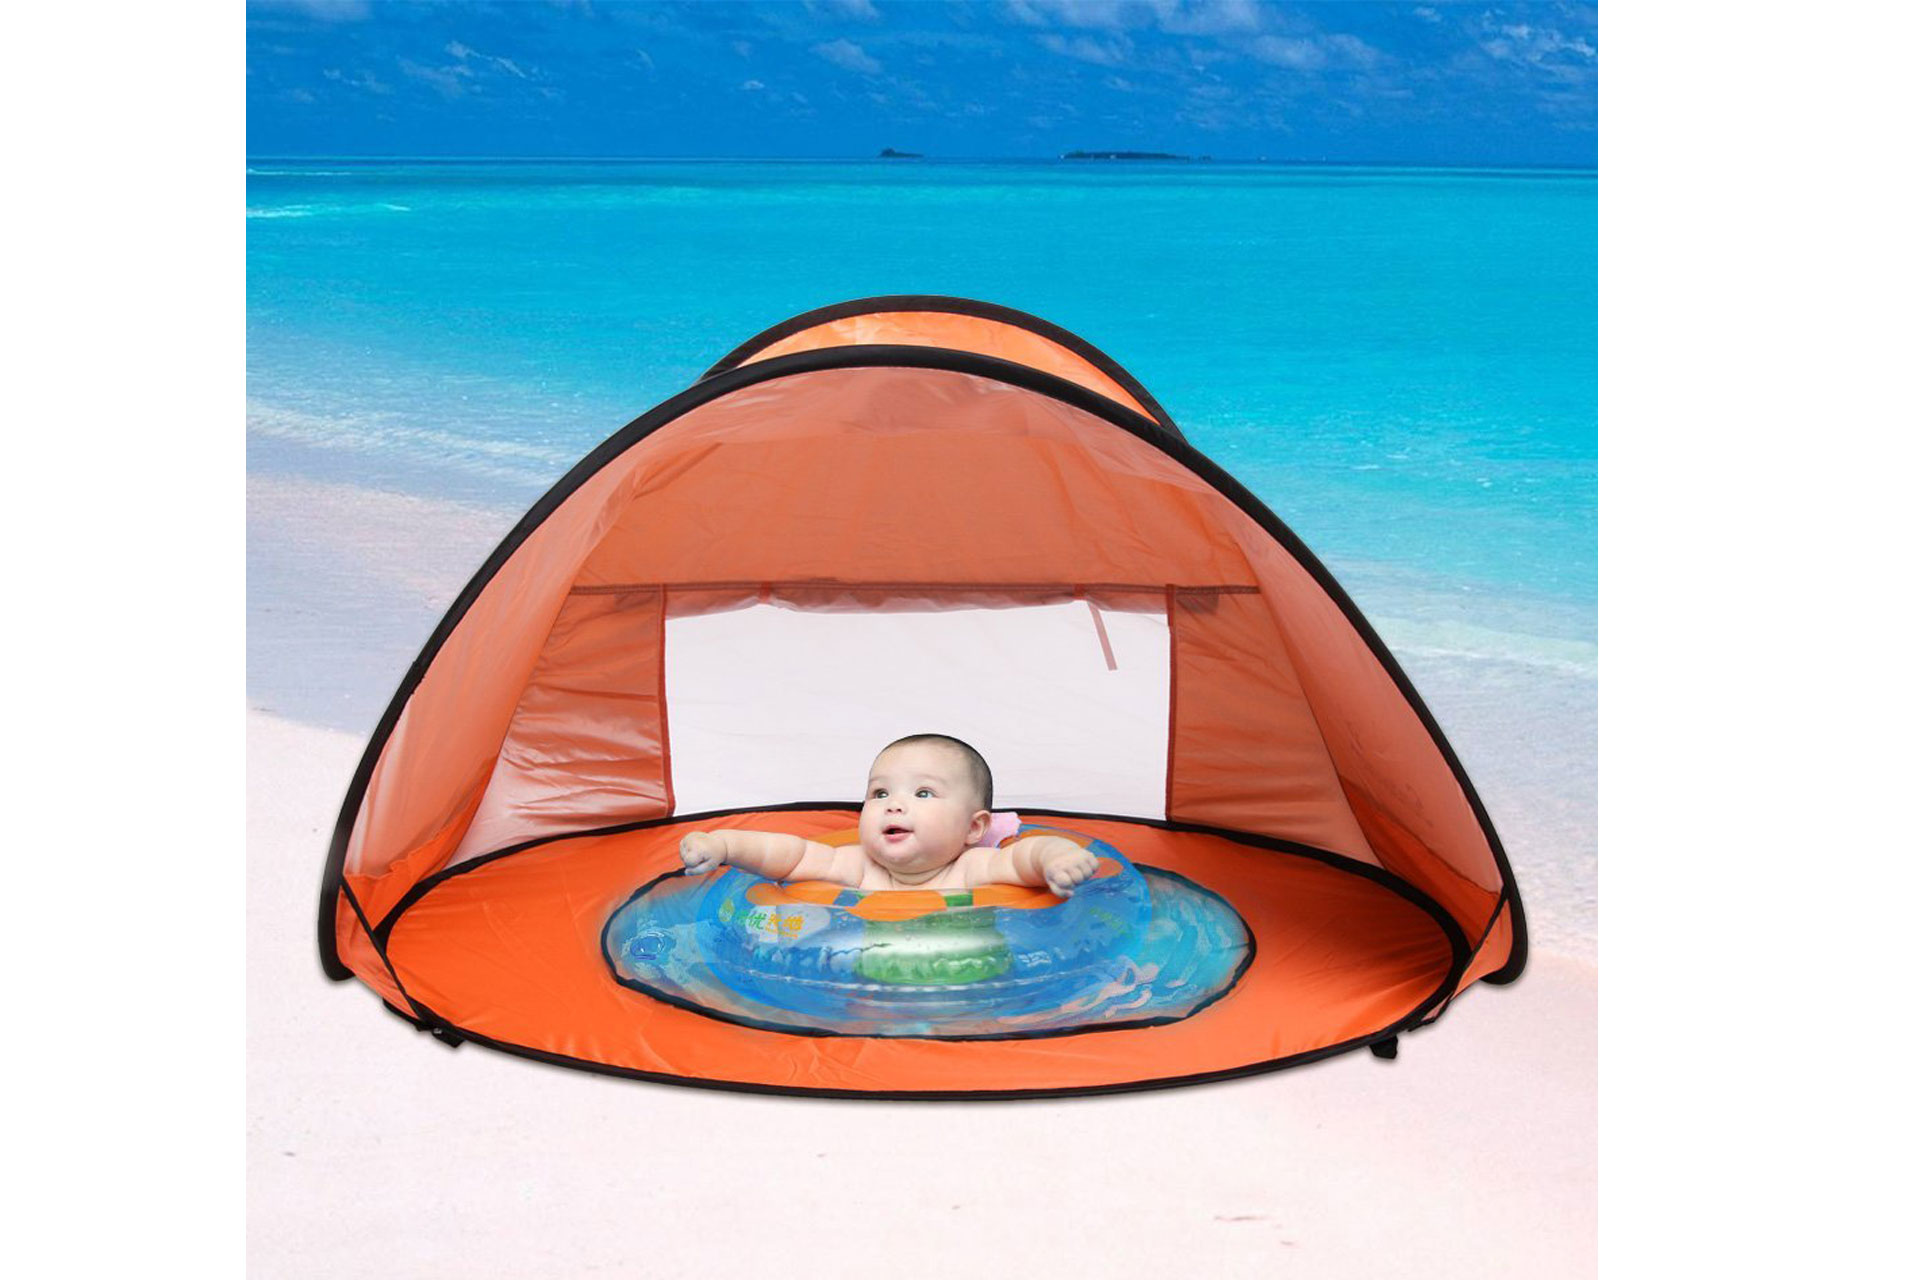 7 Best Baby Beach Tents | Family Vacation Critic Beach Baby Tent on lil nursery tent, portable baby tent, baby on beech, baby float with canopy, baby beach dog, baby beach accessories, pop-up tent, baby home tent, under the stars tent, tarp tent, baby beach playpen, baby beach furniture, baby beach book, baby beach chairs, outdoor baby tent, soccer mom rain tent, bivouac shelter, baby beach sign, sleeping bag, baby beach mattress, kidco baby tent, baby beach equipment, baby beach cabana,